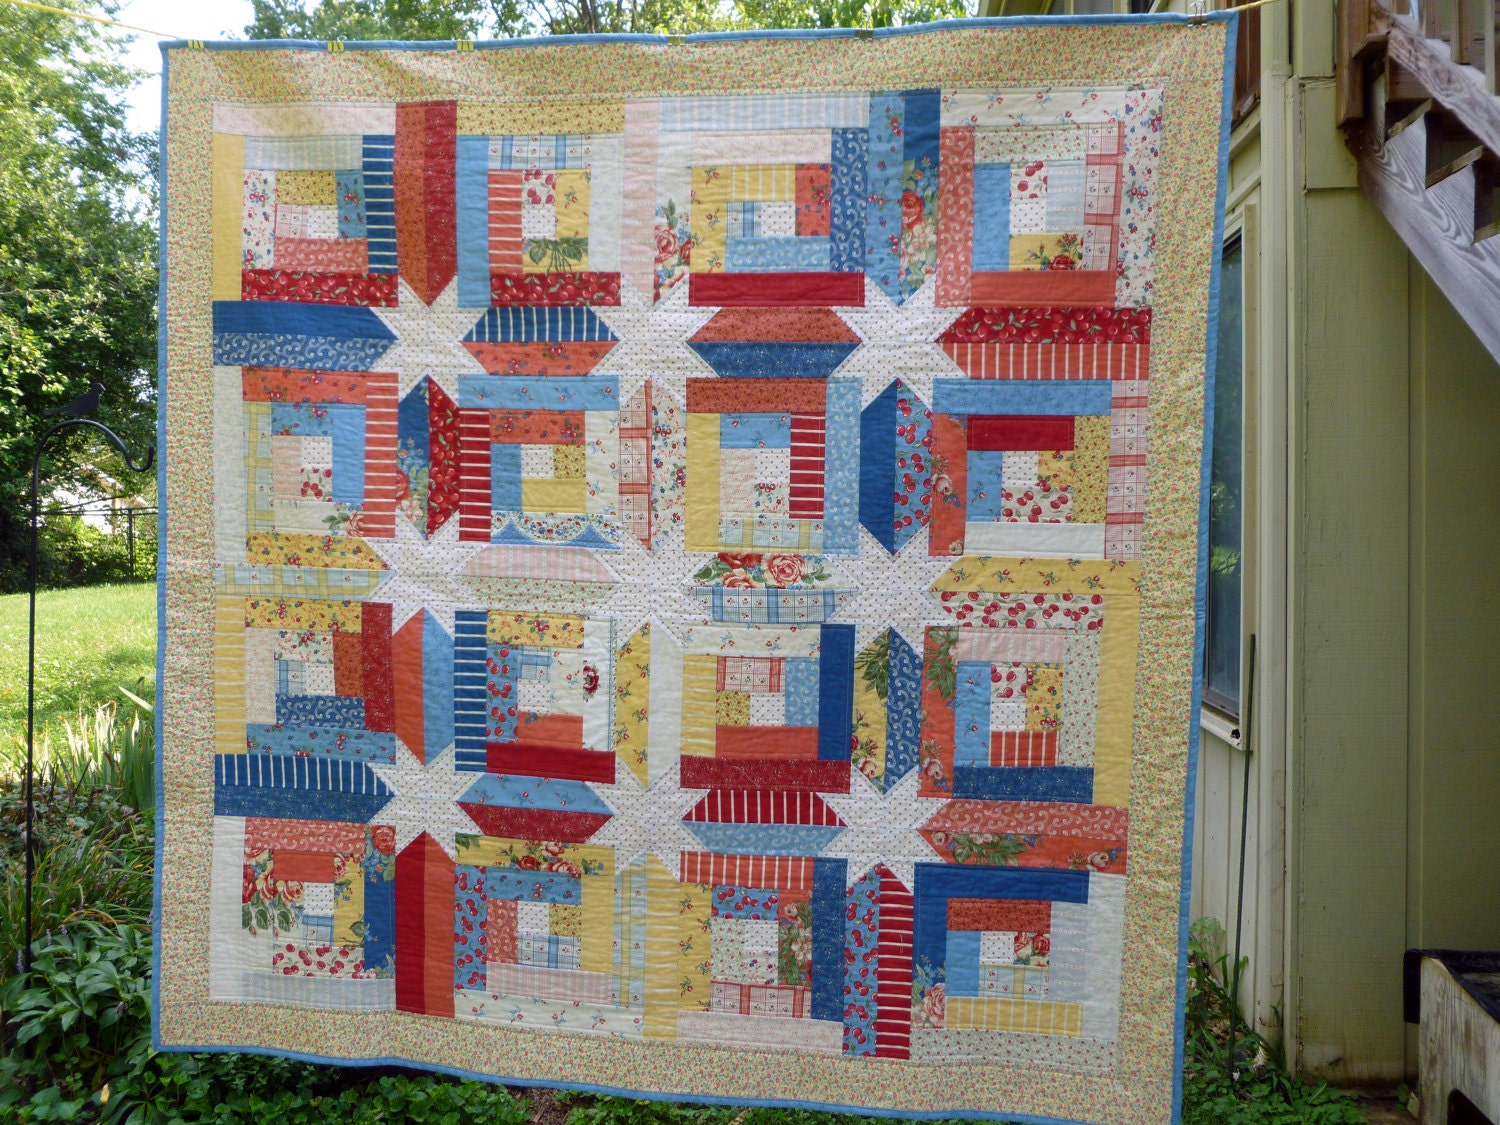 Log Cabin Hidden Stars Jelly Roll Quilt by HePaintsSheSews on Etsy